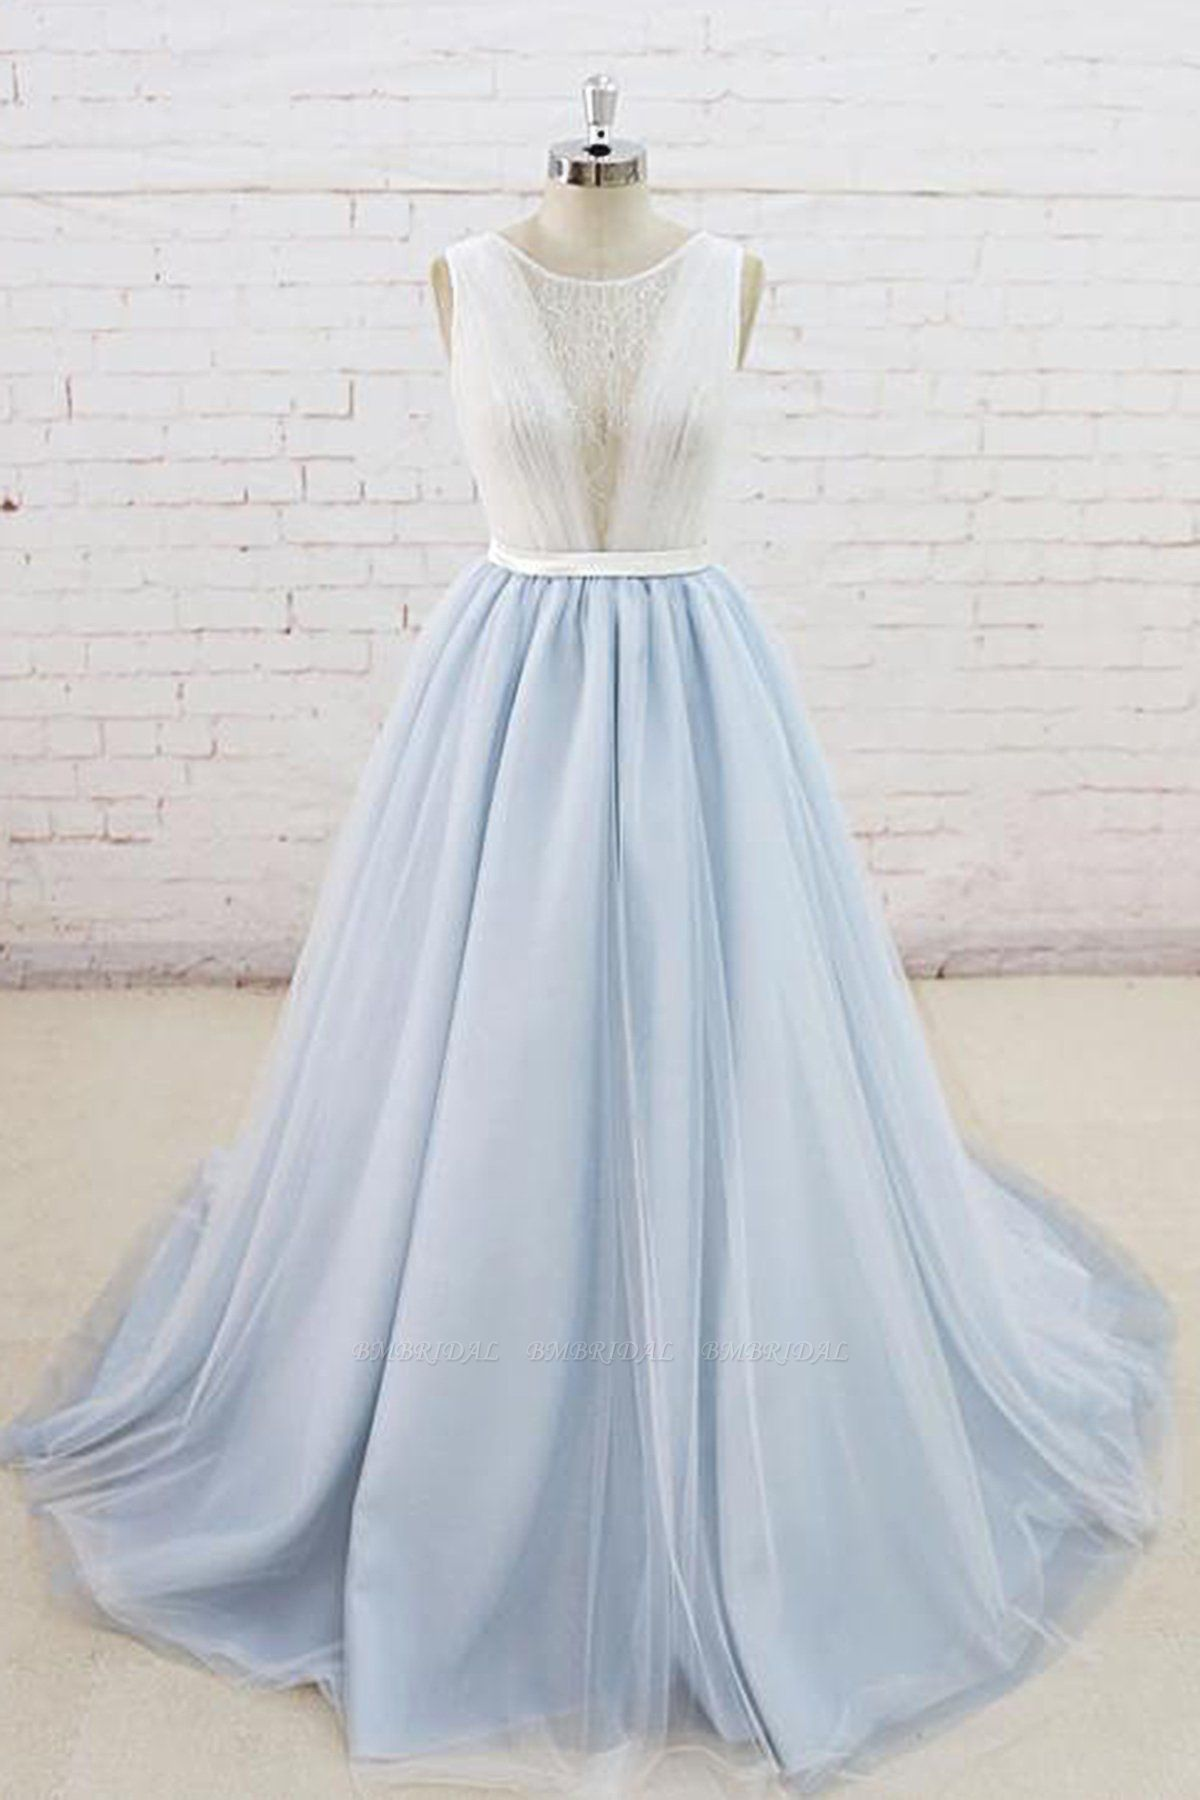 BMbridal Gorgeous Light Blue Tulle Lace Wedding Dress Sheer Back Summer Bridal Gowns On Sale